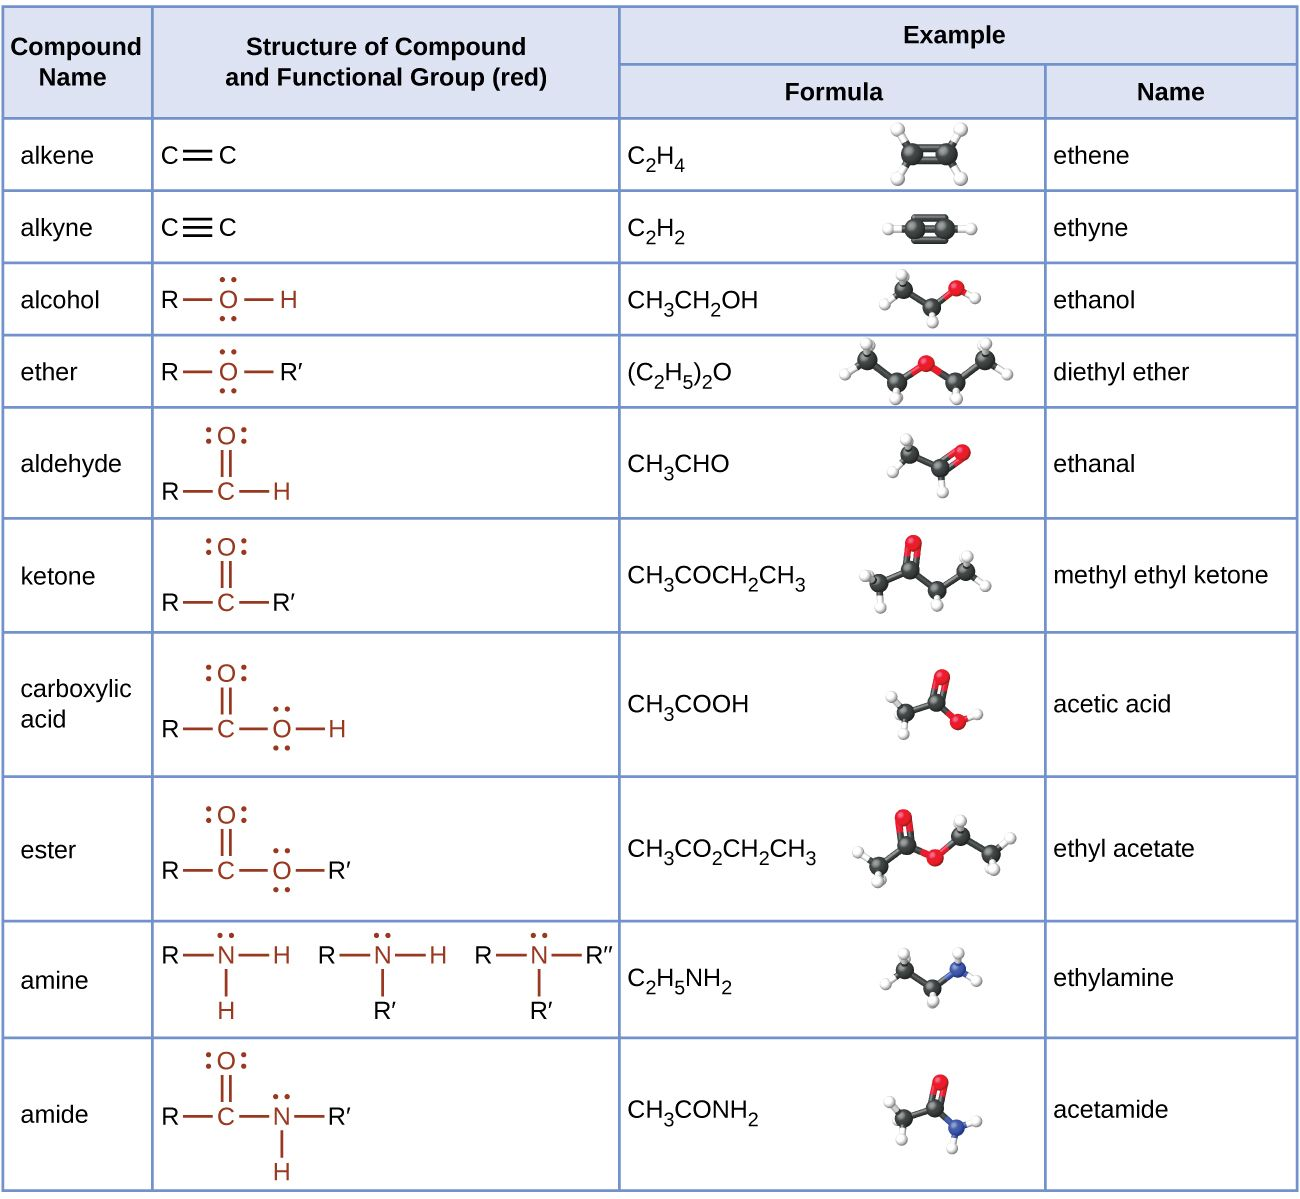 this table provides compound names structures with functional